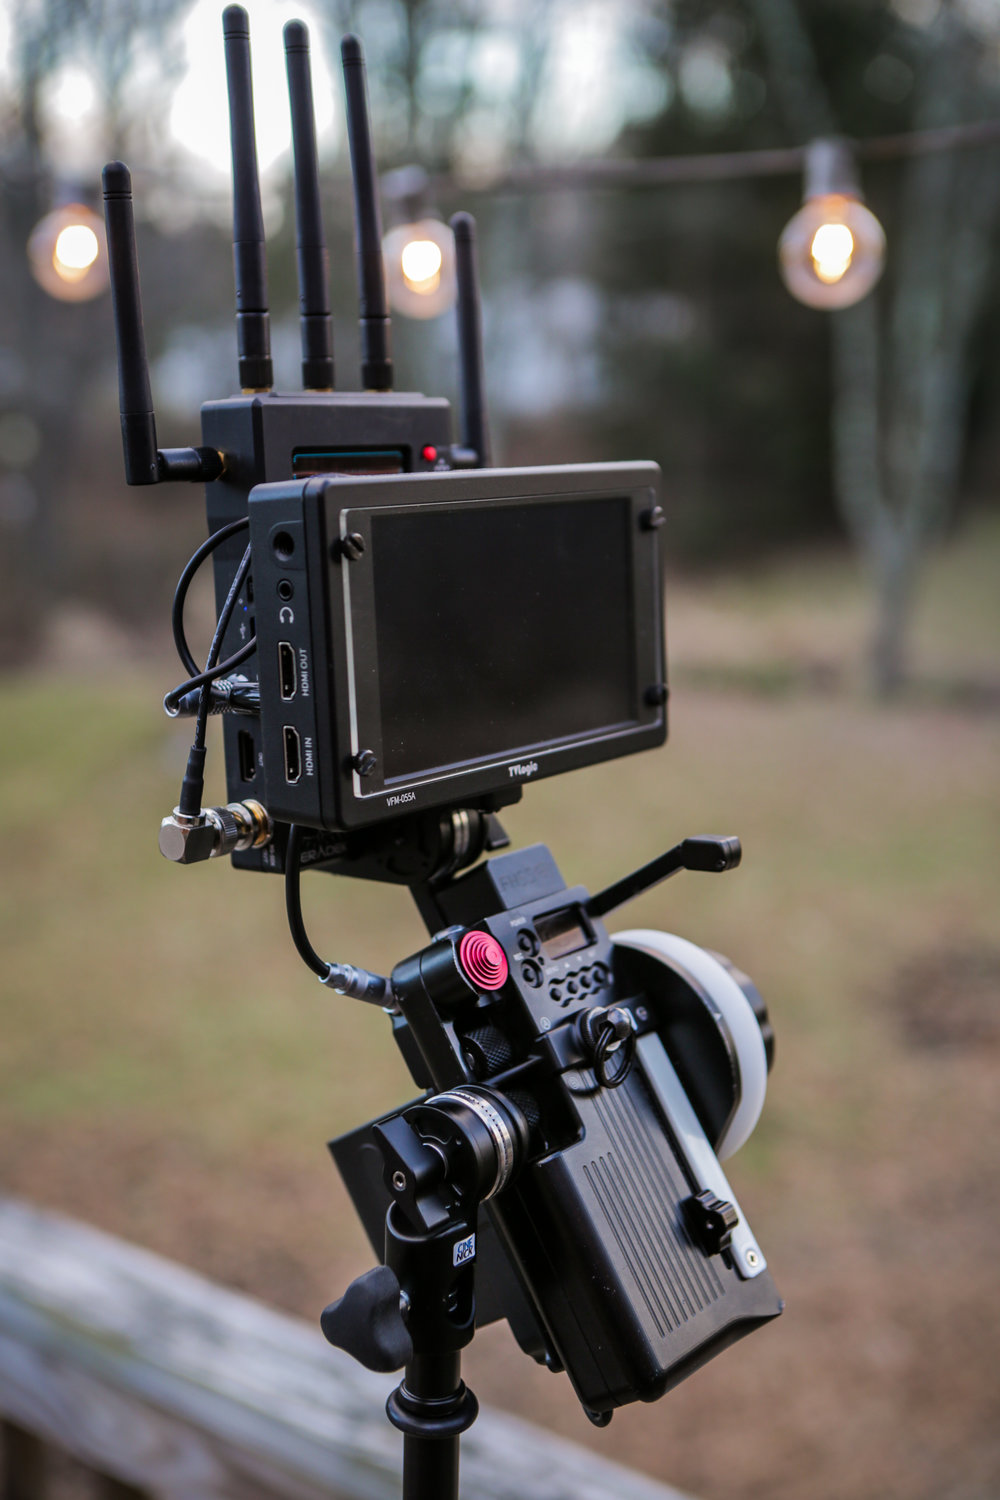 Fully adjustable and power independent.  Shown here with a TVLOGIC VFM-055A OLED monitor and TERADEK BOLT 3000 receiver.